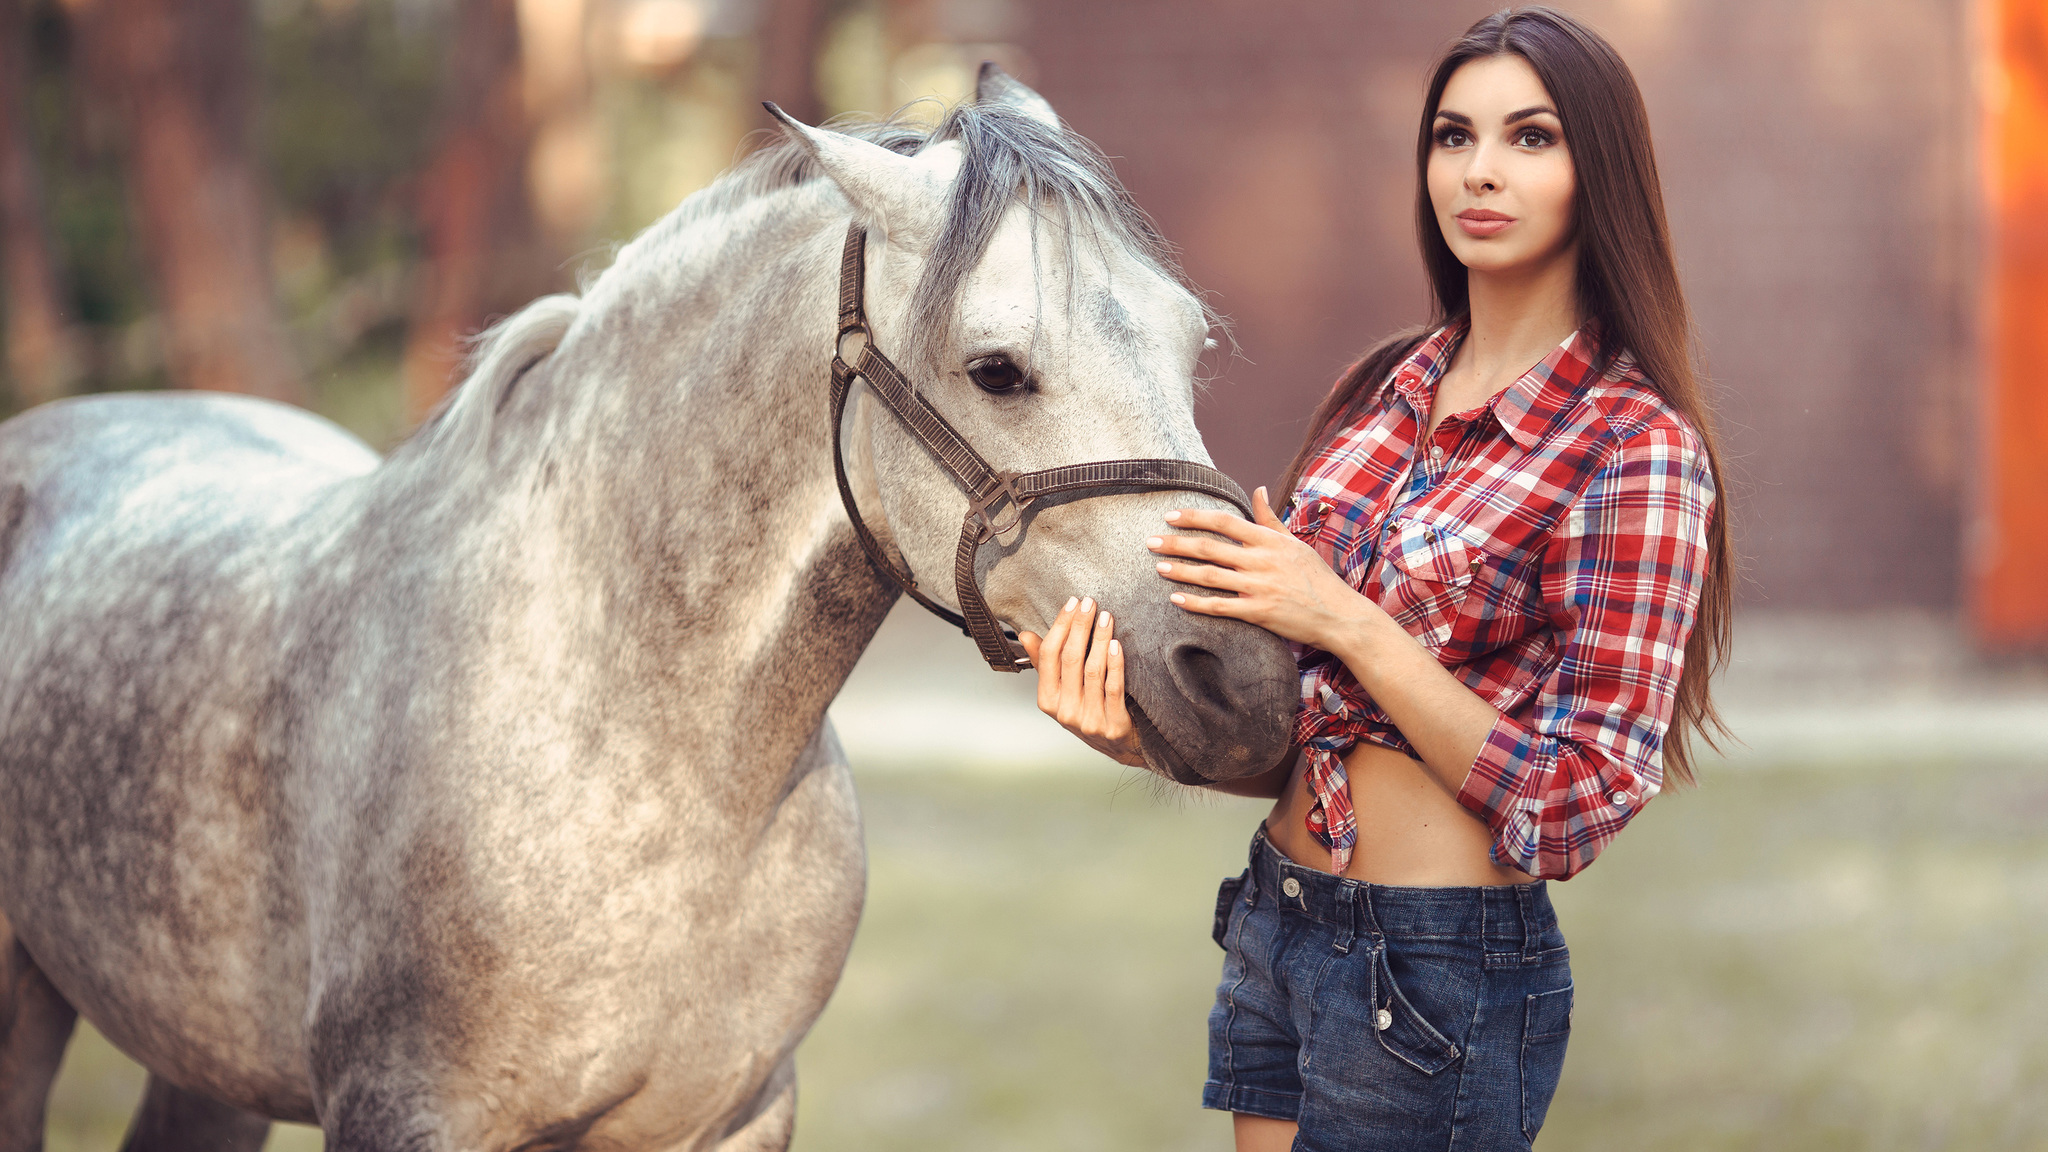 2048x1152 Beautiful Girl With Horse 4k 2048x1152 Resolution HD 4k ...